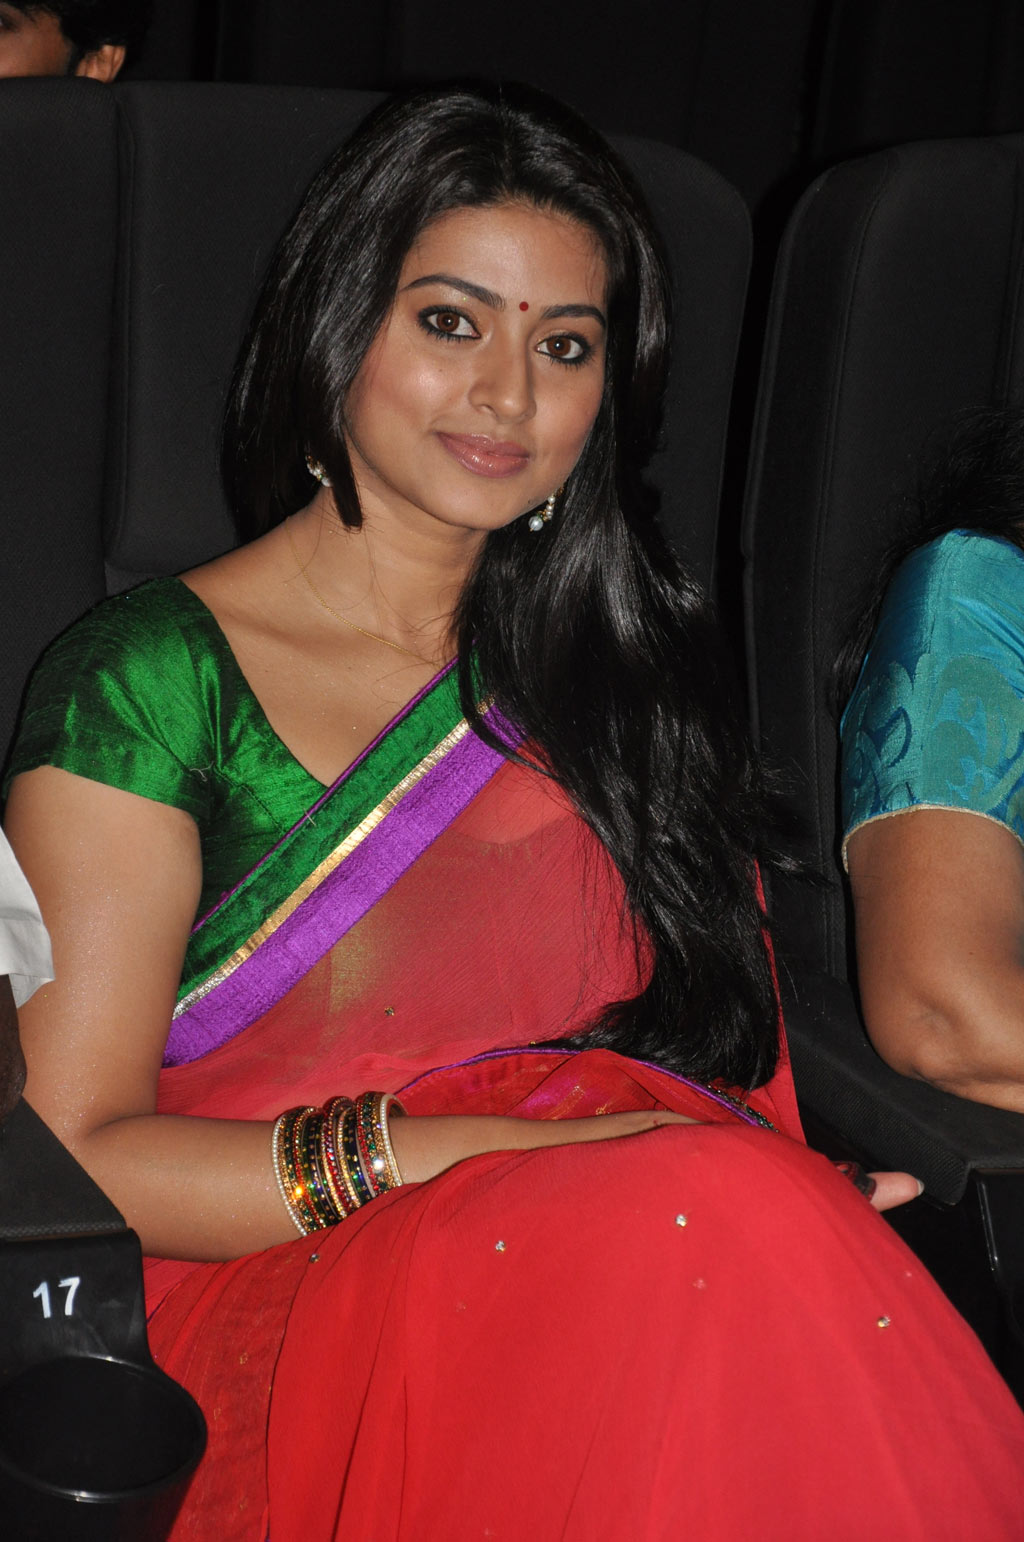 Sneha Latest Images in Saree - Tamil Movie Posters Images Actress ...